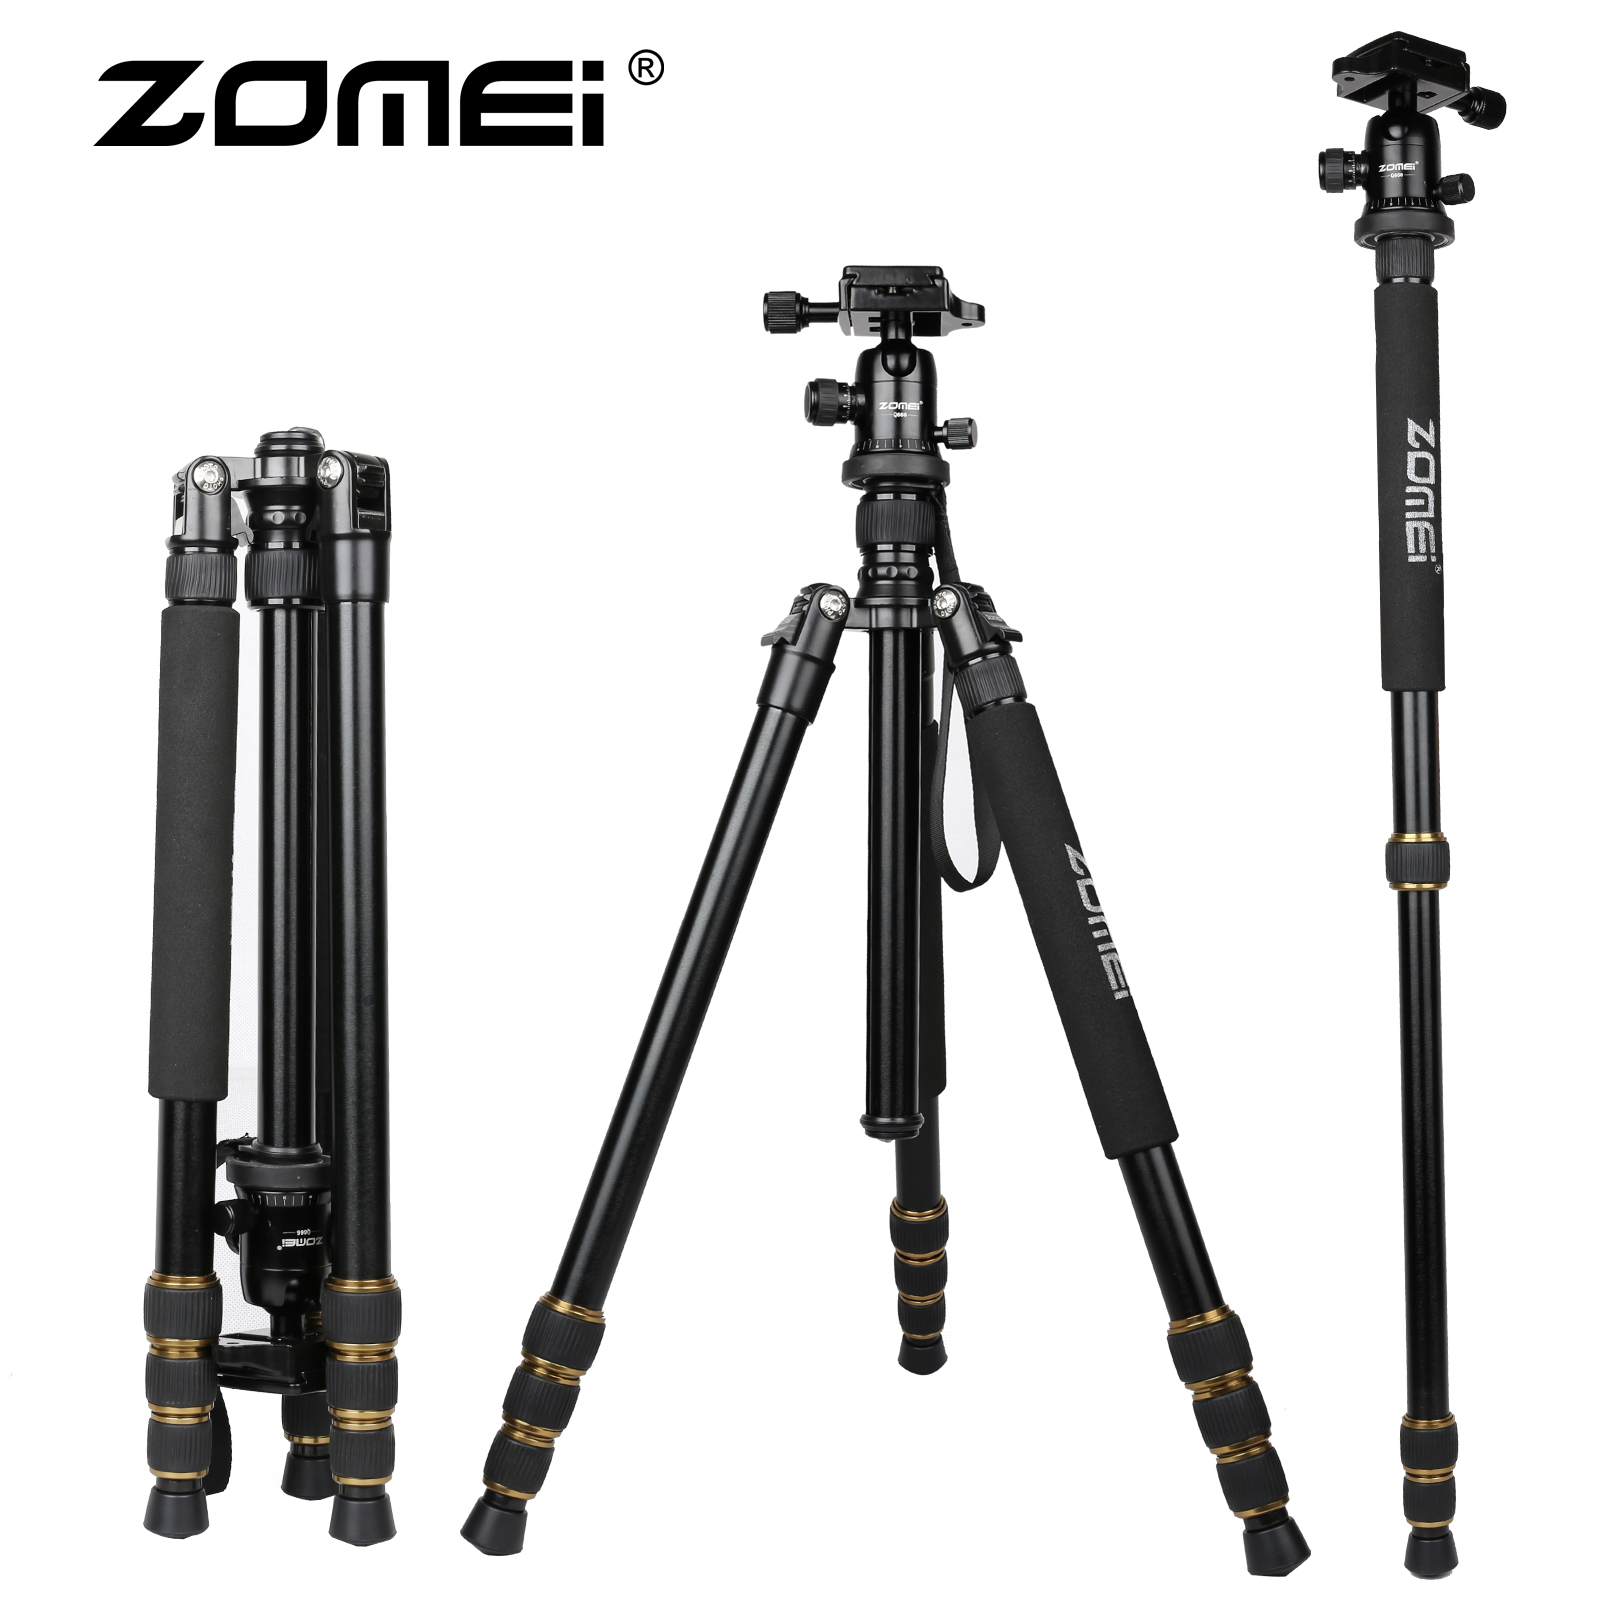 Zomei Q666 Professional Tripod Monopod with Ball Head Compact Travel Tripods Portable Camera Stand for SLR DSLR Digital Camera zomei z888 portable professional aluminium alloy travel tripod monopod z818 for slr dslr digital camera five colors available